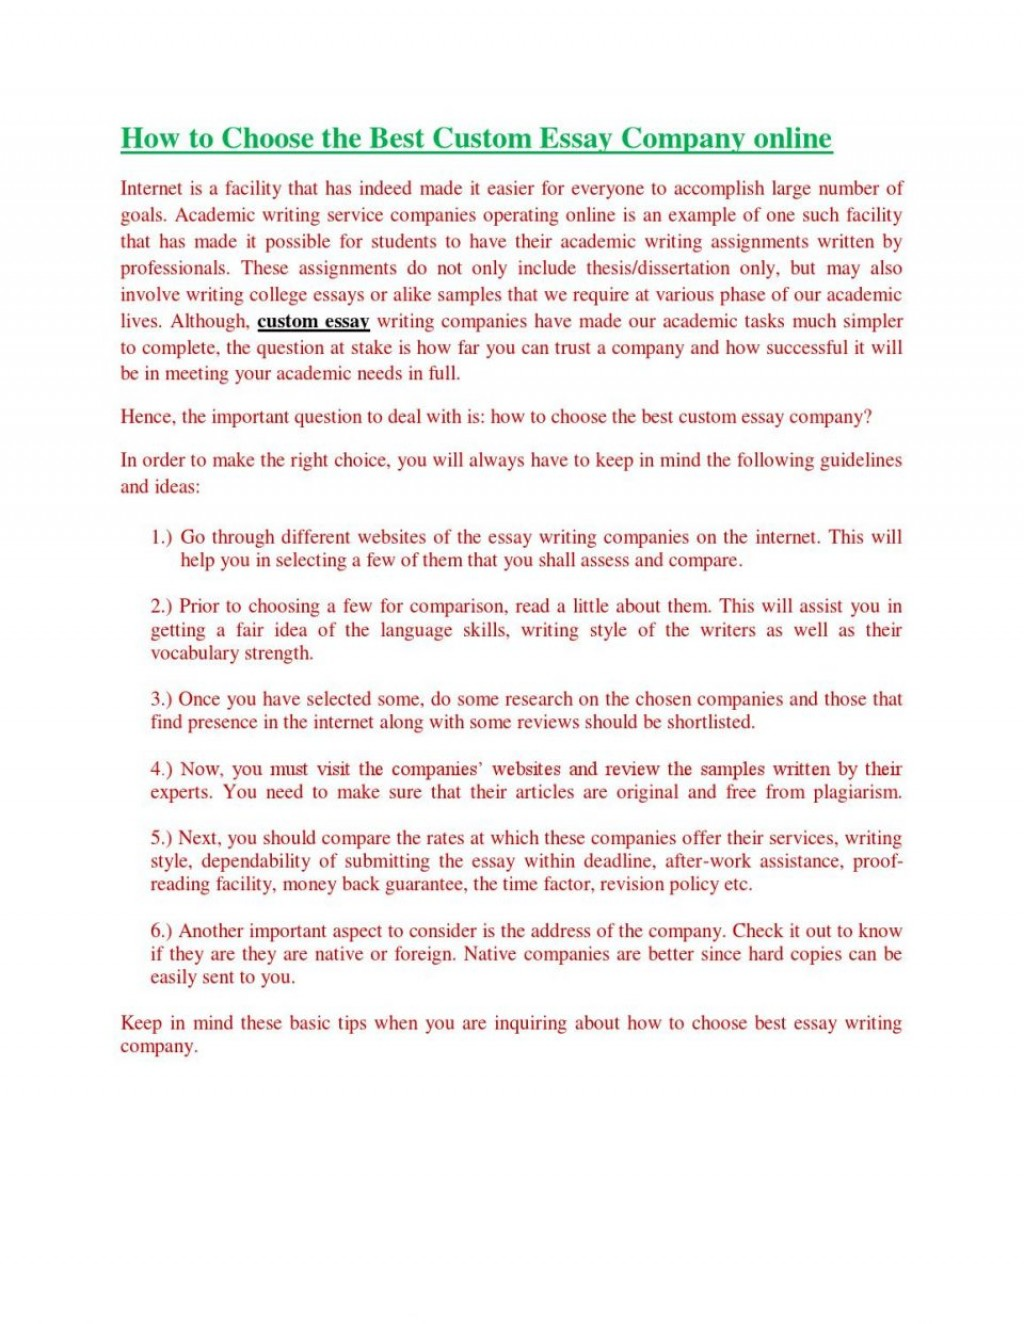 020 Essay Example Writing Companies Uk Best Company Top Websites Sites Large